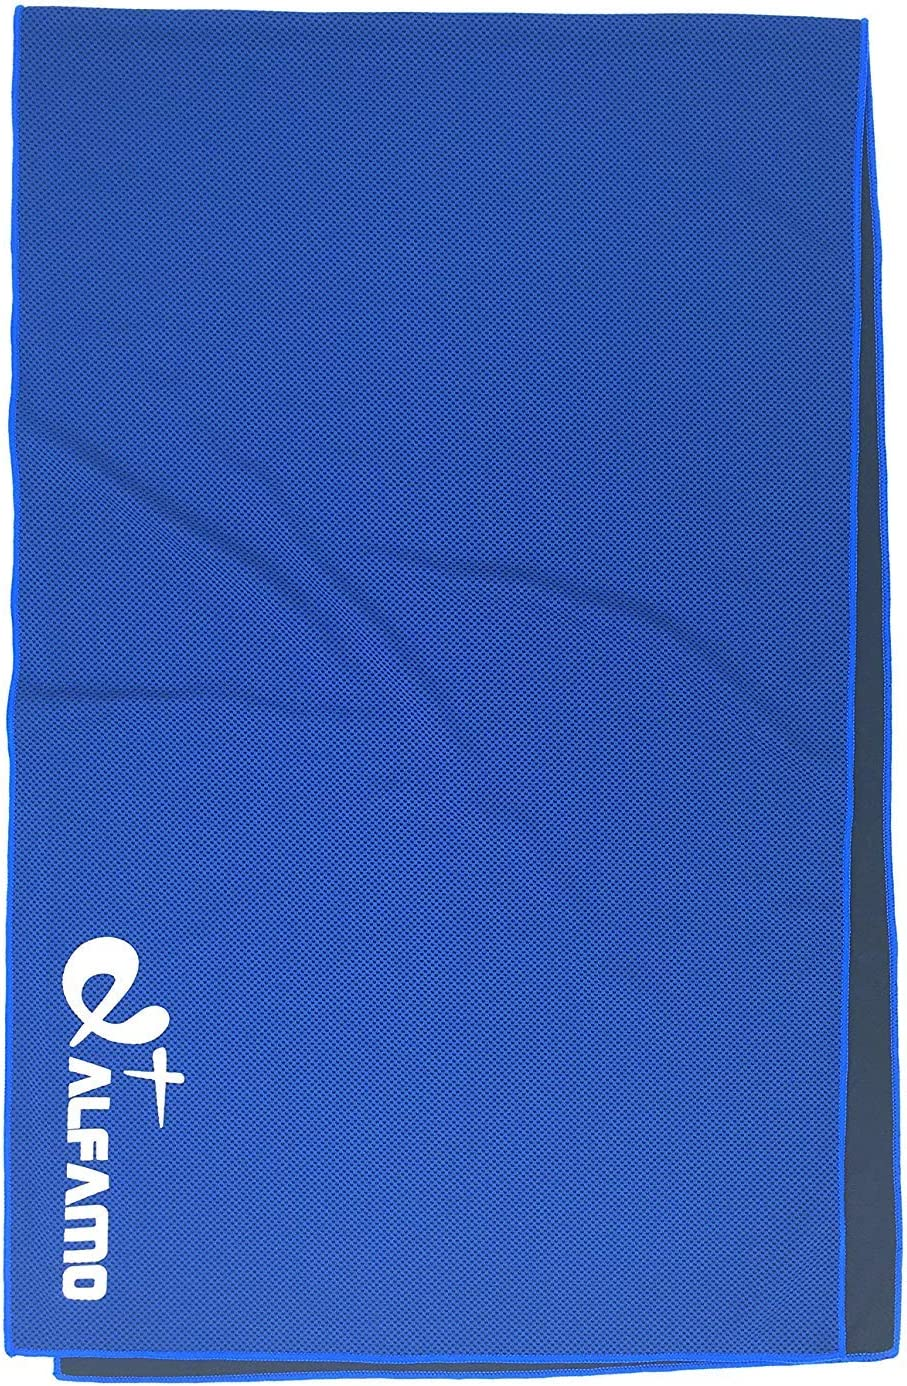 Alfamo Cooling Towel for Sports, Workout, Fitness, Gym, Yoga, Pilates, Travel, Camping & More